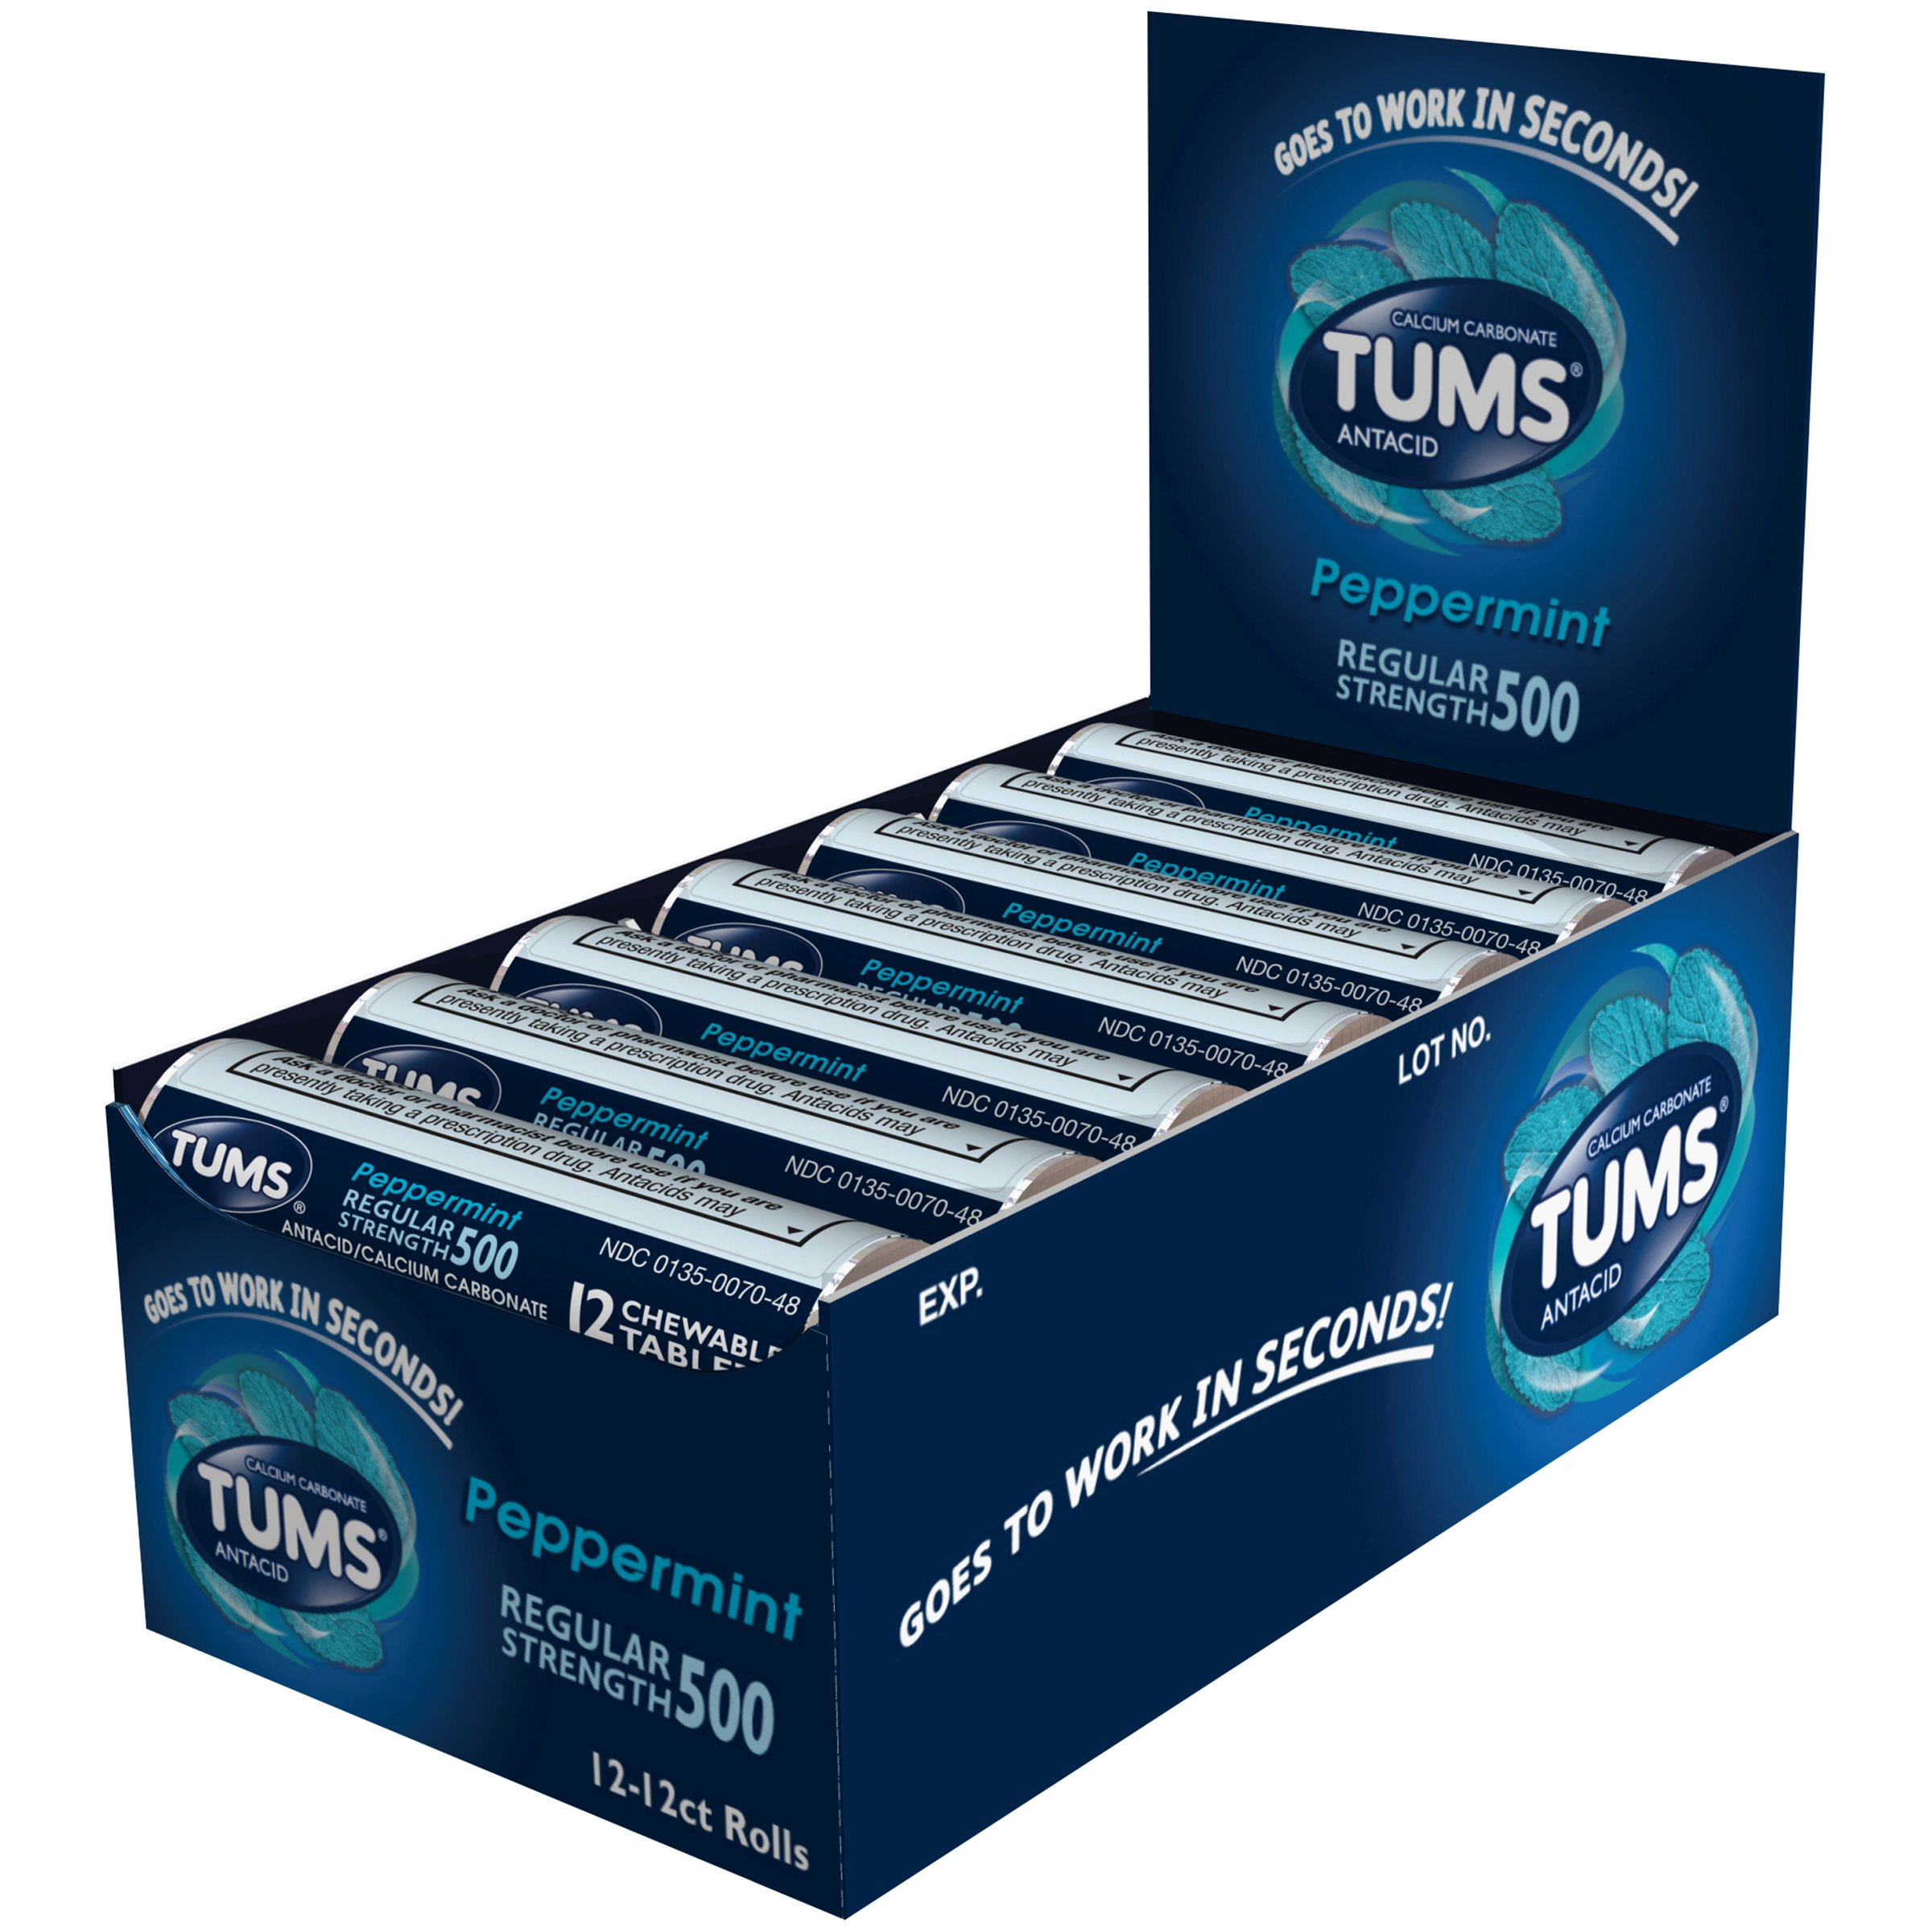 Tums Regular Strength, Peppermint, 12-Count Rolls (Pack of 12) by TUMS